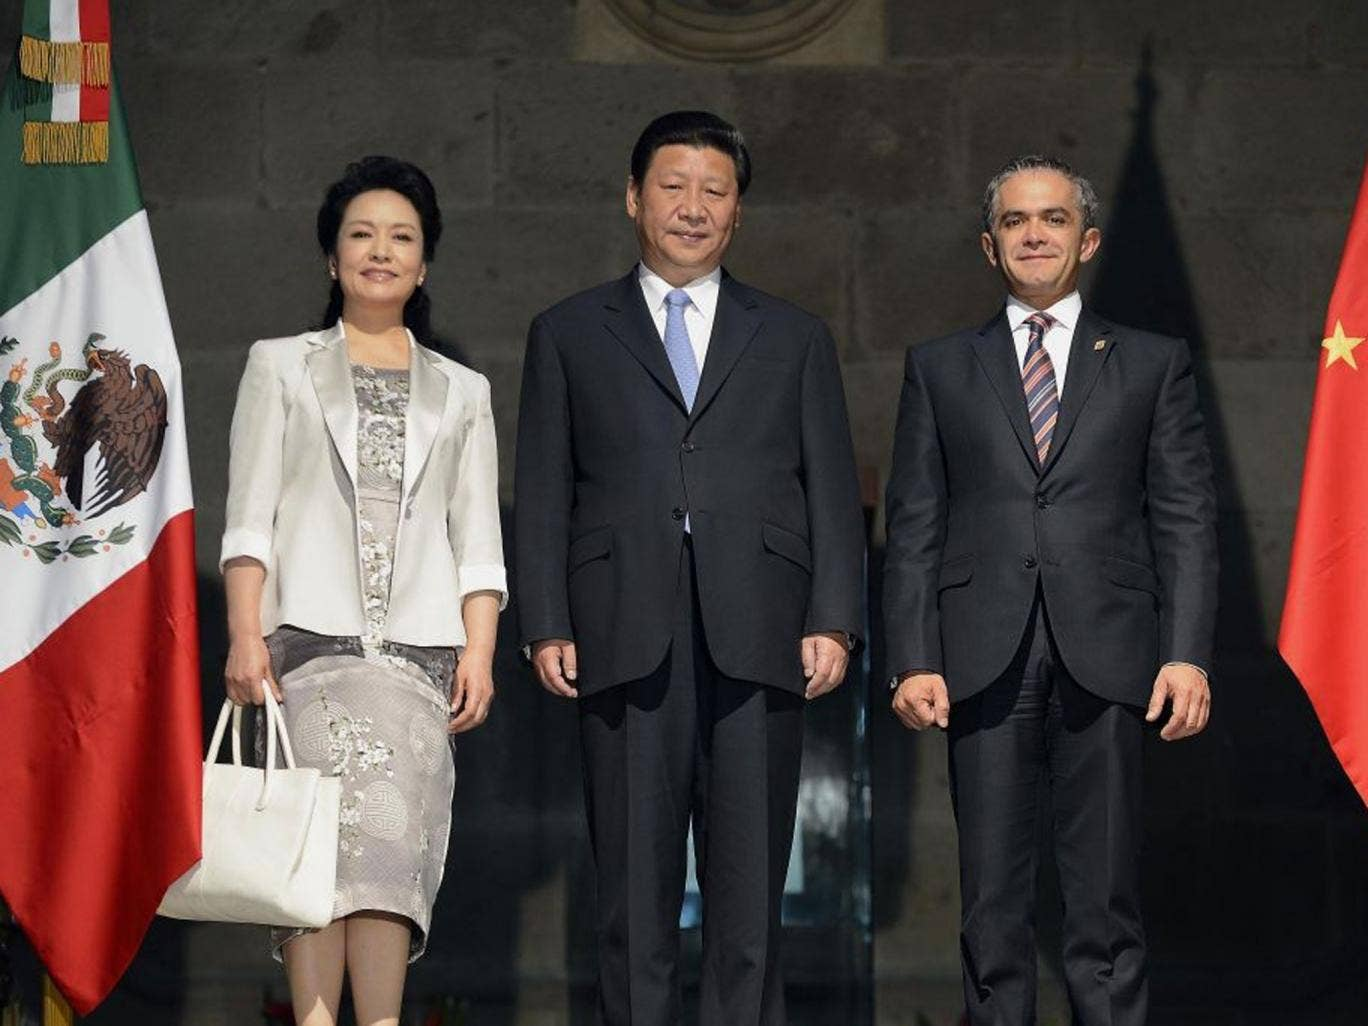 New direction: President Xi Jinping (pictured here with his wife and Mexico City's Mayor Miguel Mancera) is moving China away from state control of the investment process